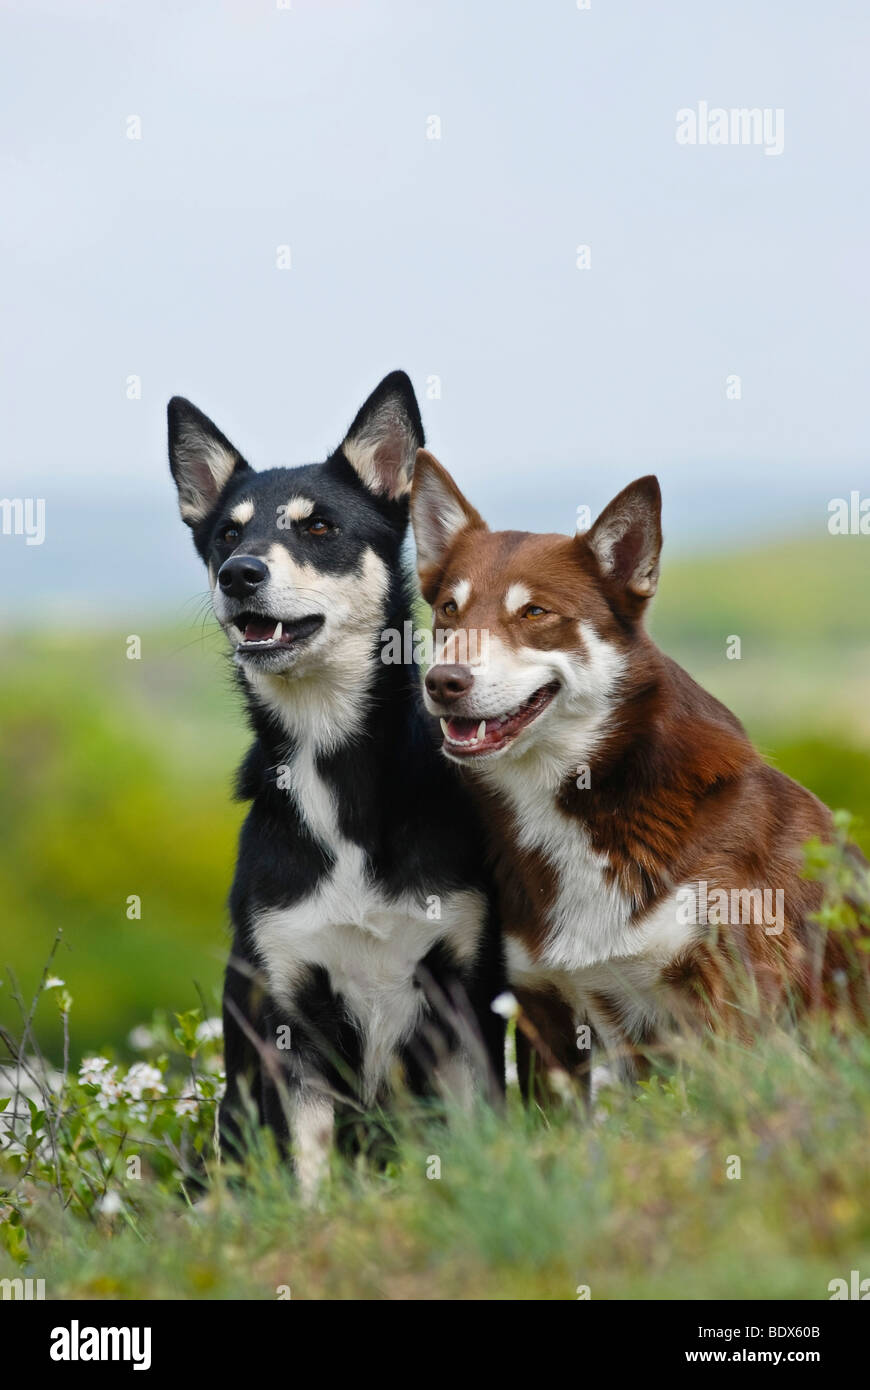 Two Lapponian Herder, Lapinporokoira or Lapp Reindeer dogs sitting on a flowery meadow - Stock Image